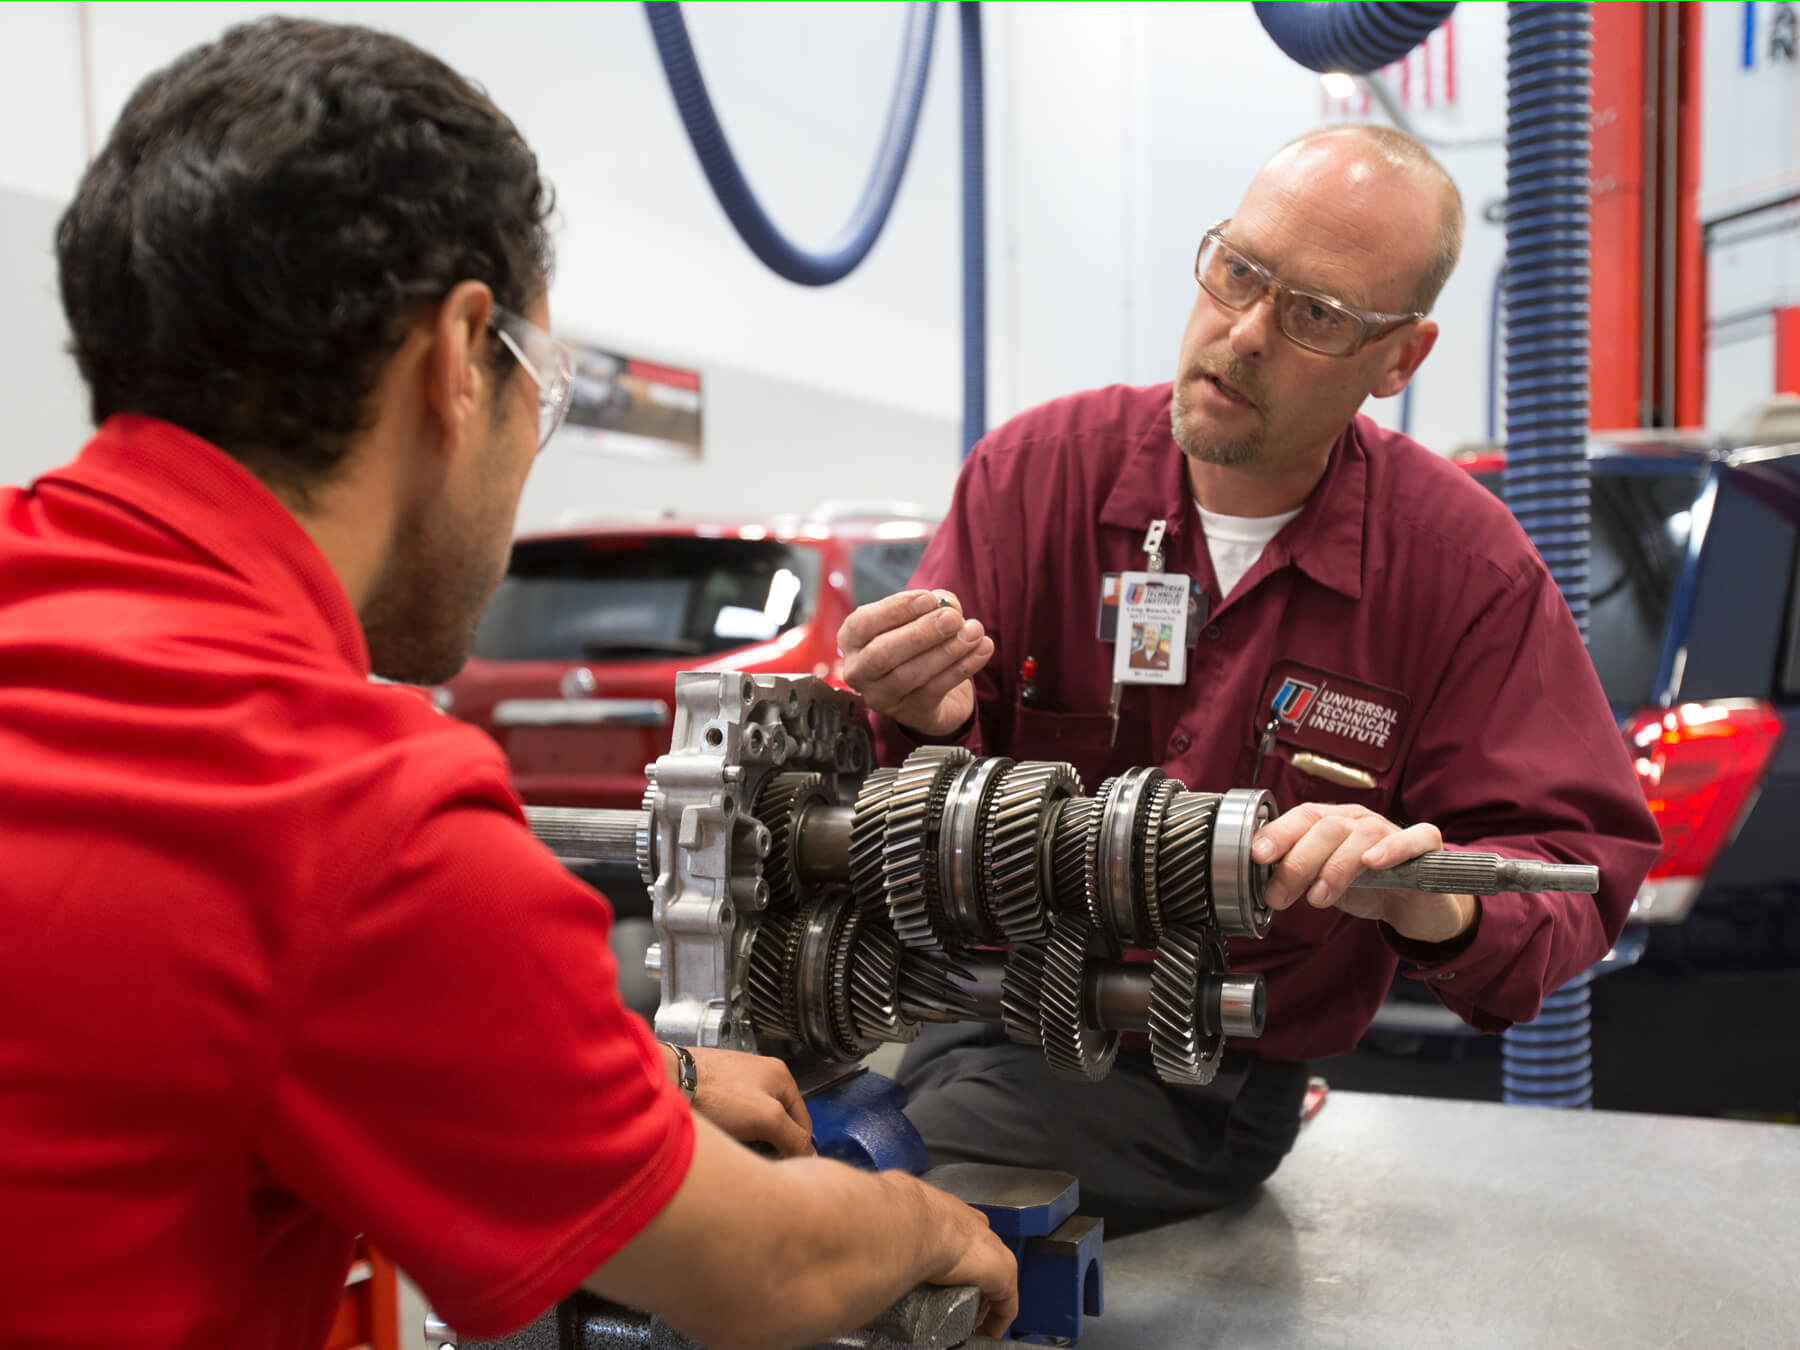 UTI student and instructor working with gears in the Nissan lab